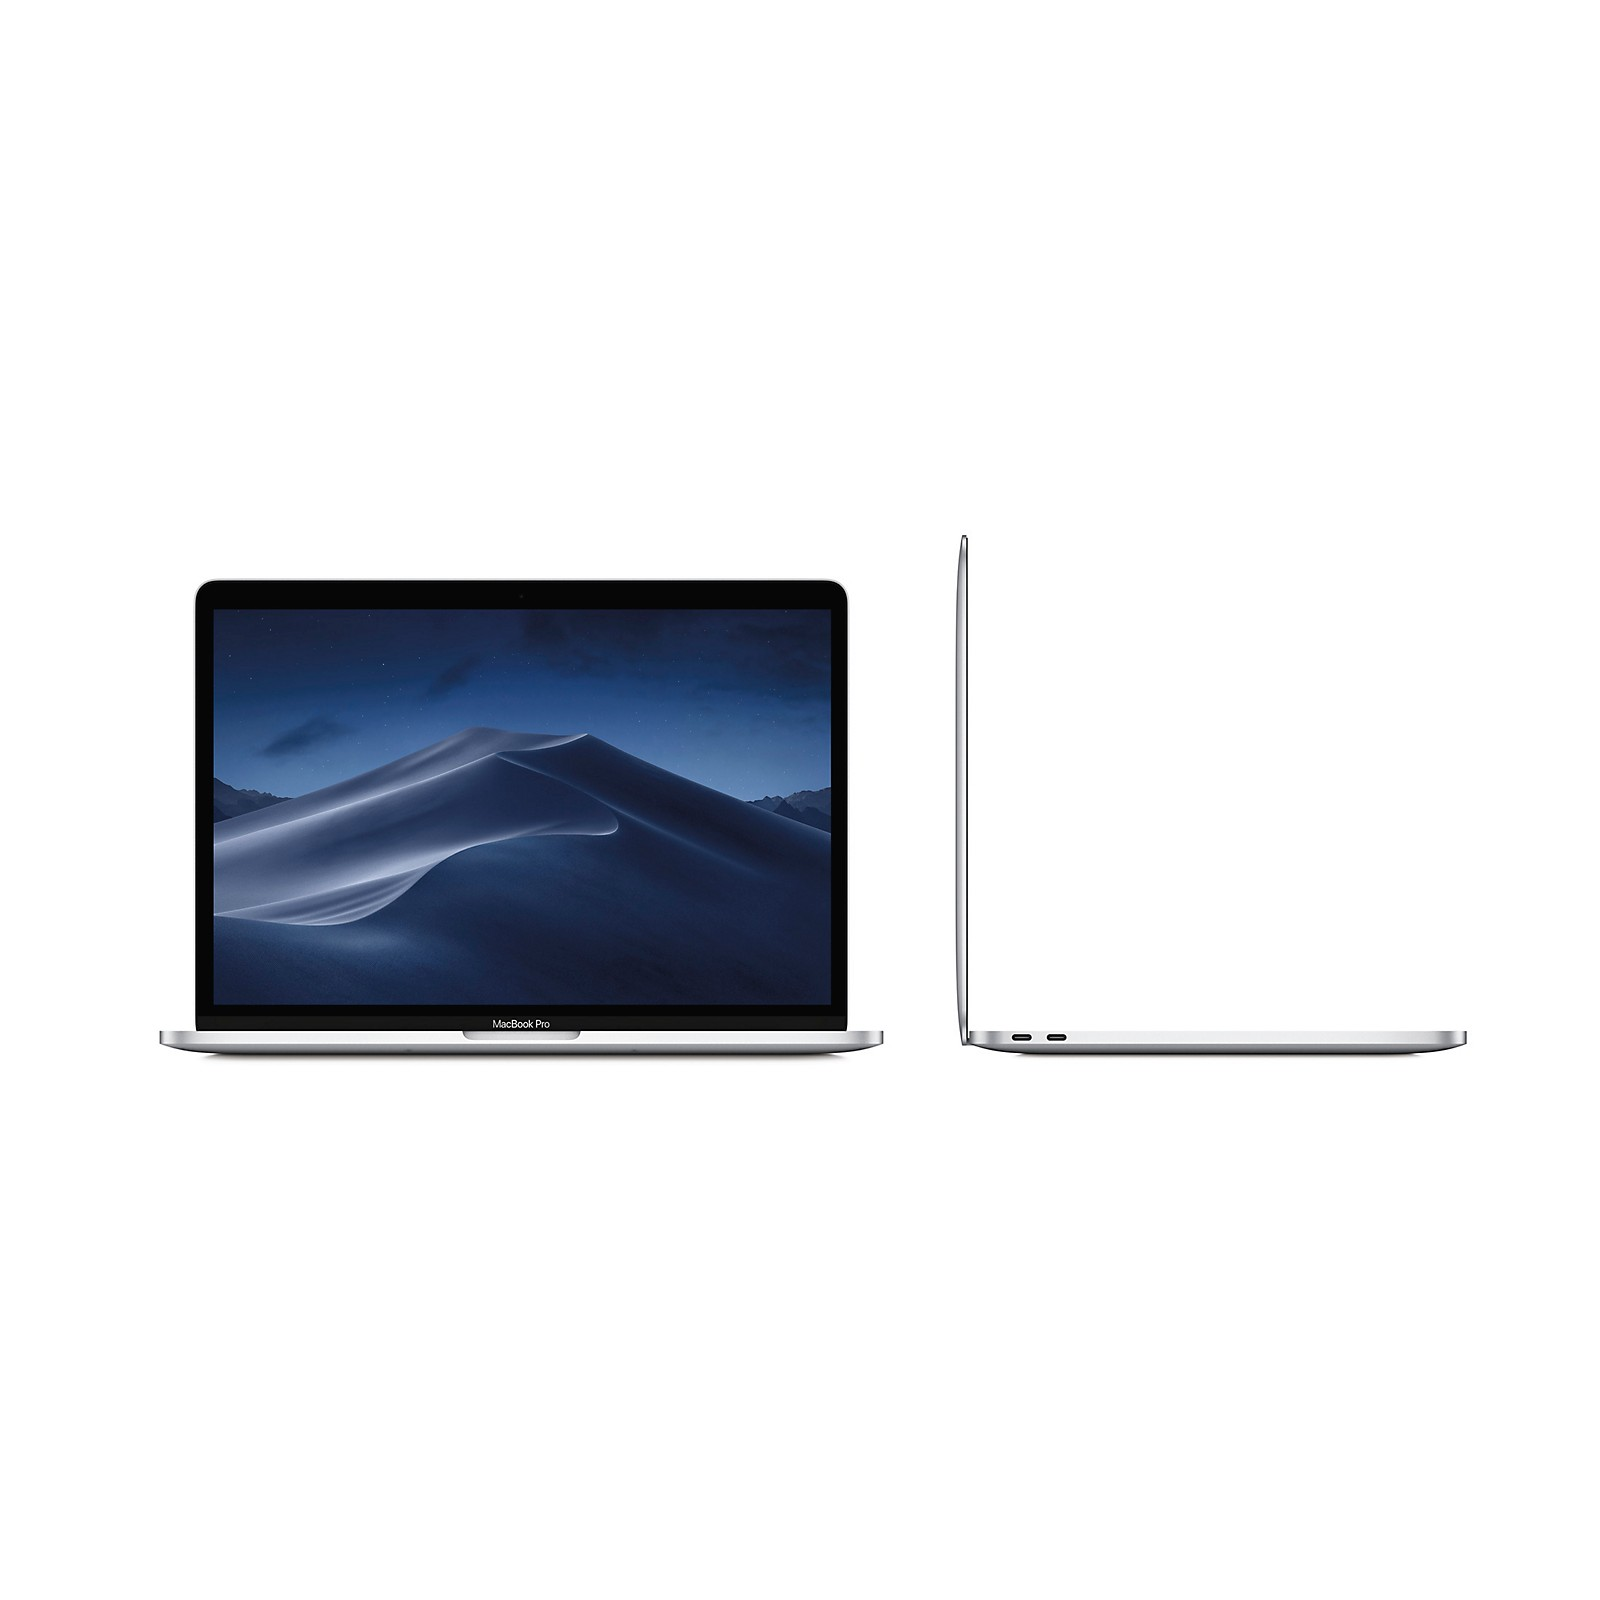 Apple MacBook Pro 13-inch with Touch Bar 2.4GHz quad-core 8th-Gen Intel Core i5 256GB MV992LL/A